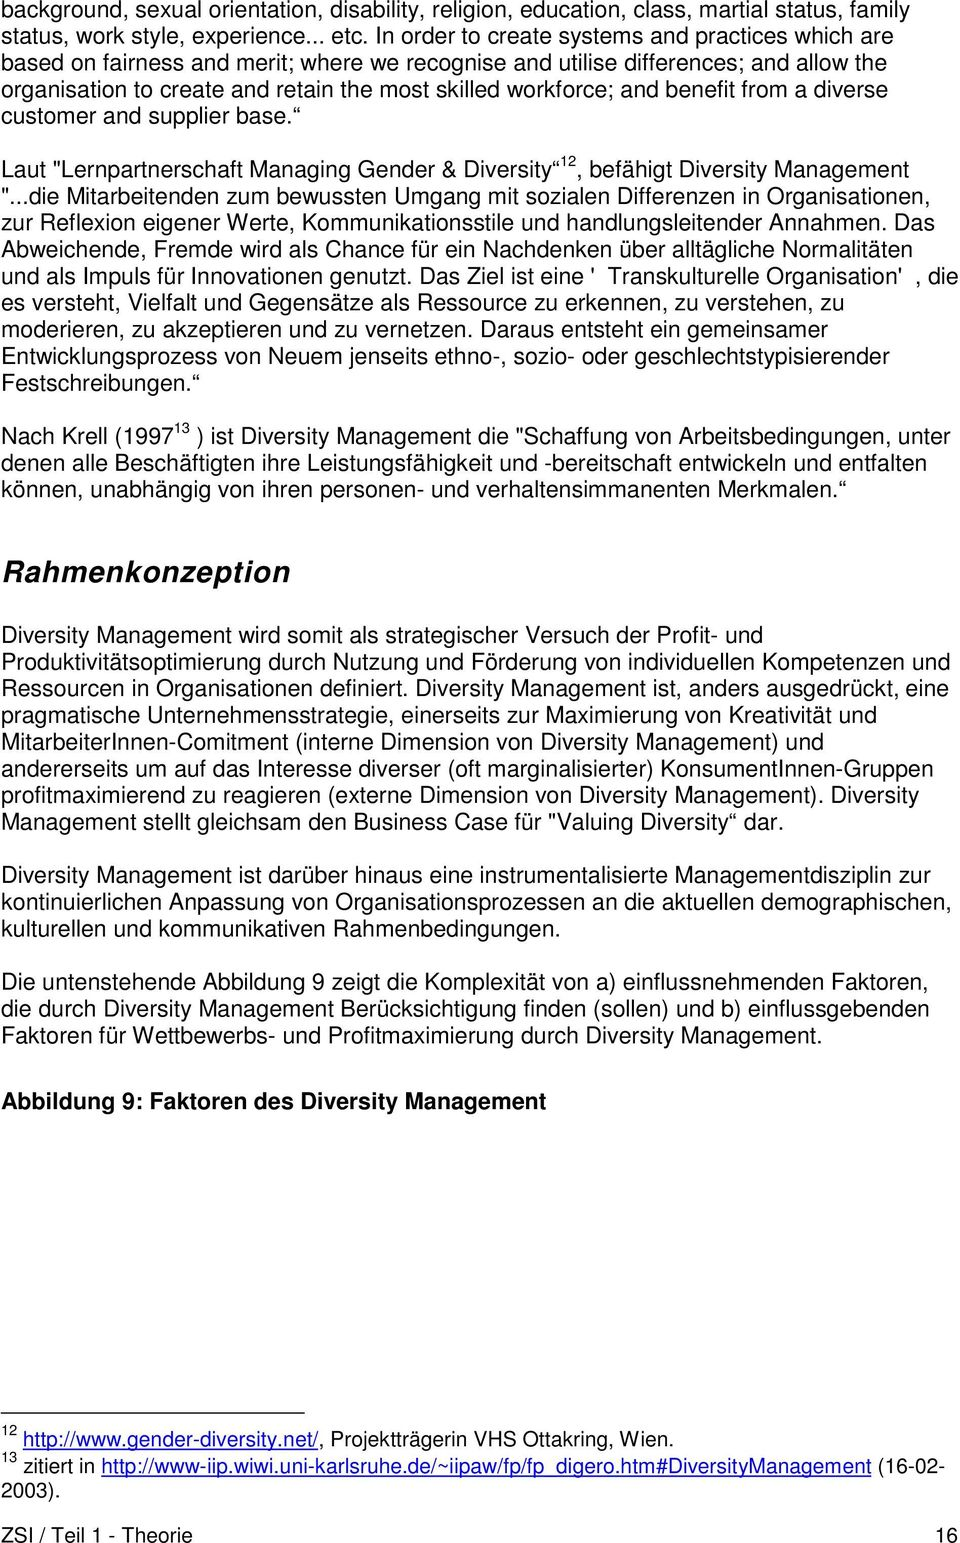 "and benefit from a diverse customer and supplier base. Laut ""Lernpartnerschaft Managing Gender & Diversity 12, befähigt Diversity Management ""."